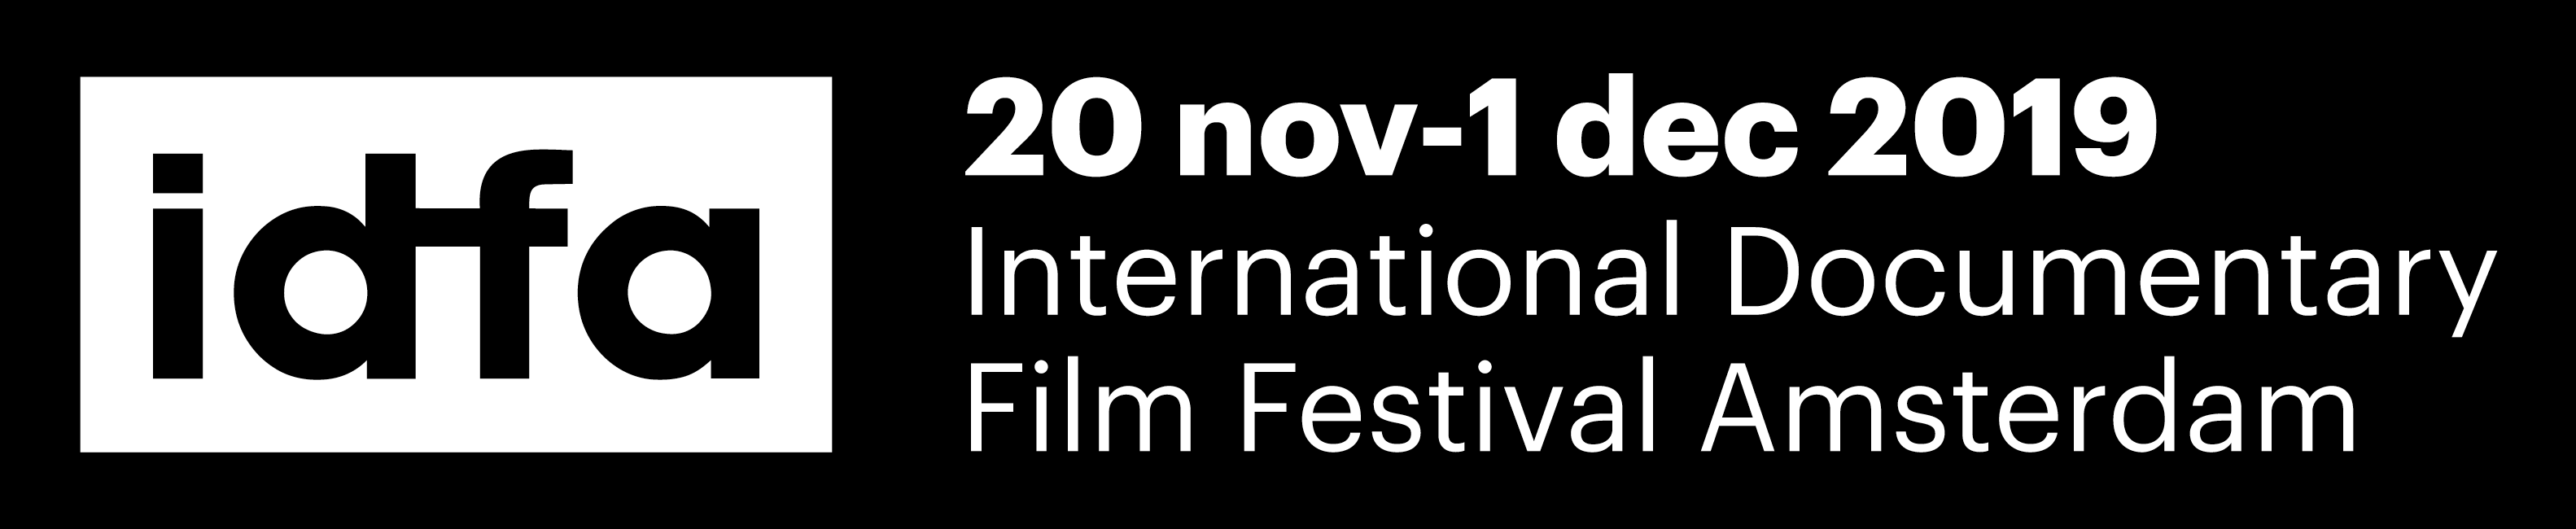 IDFA 20 november - 1 december 2019 International Documentary Film Festival Amsterdam